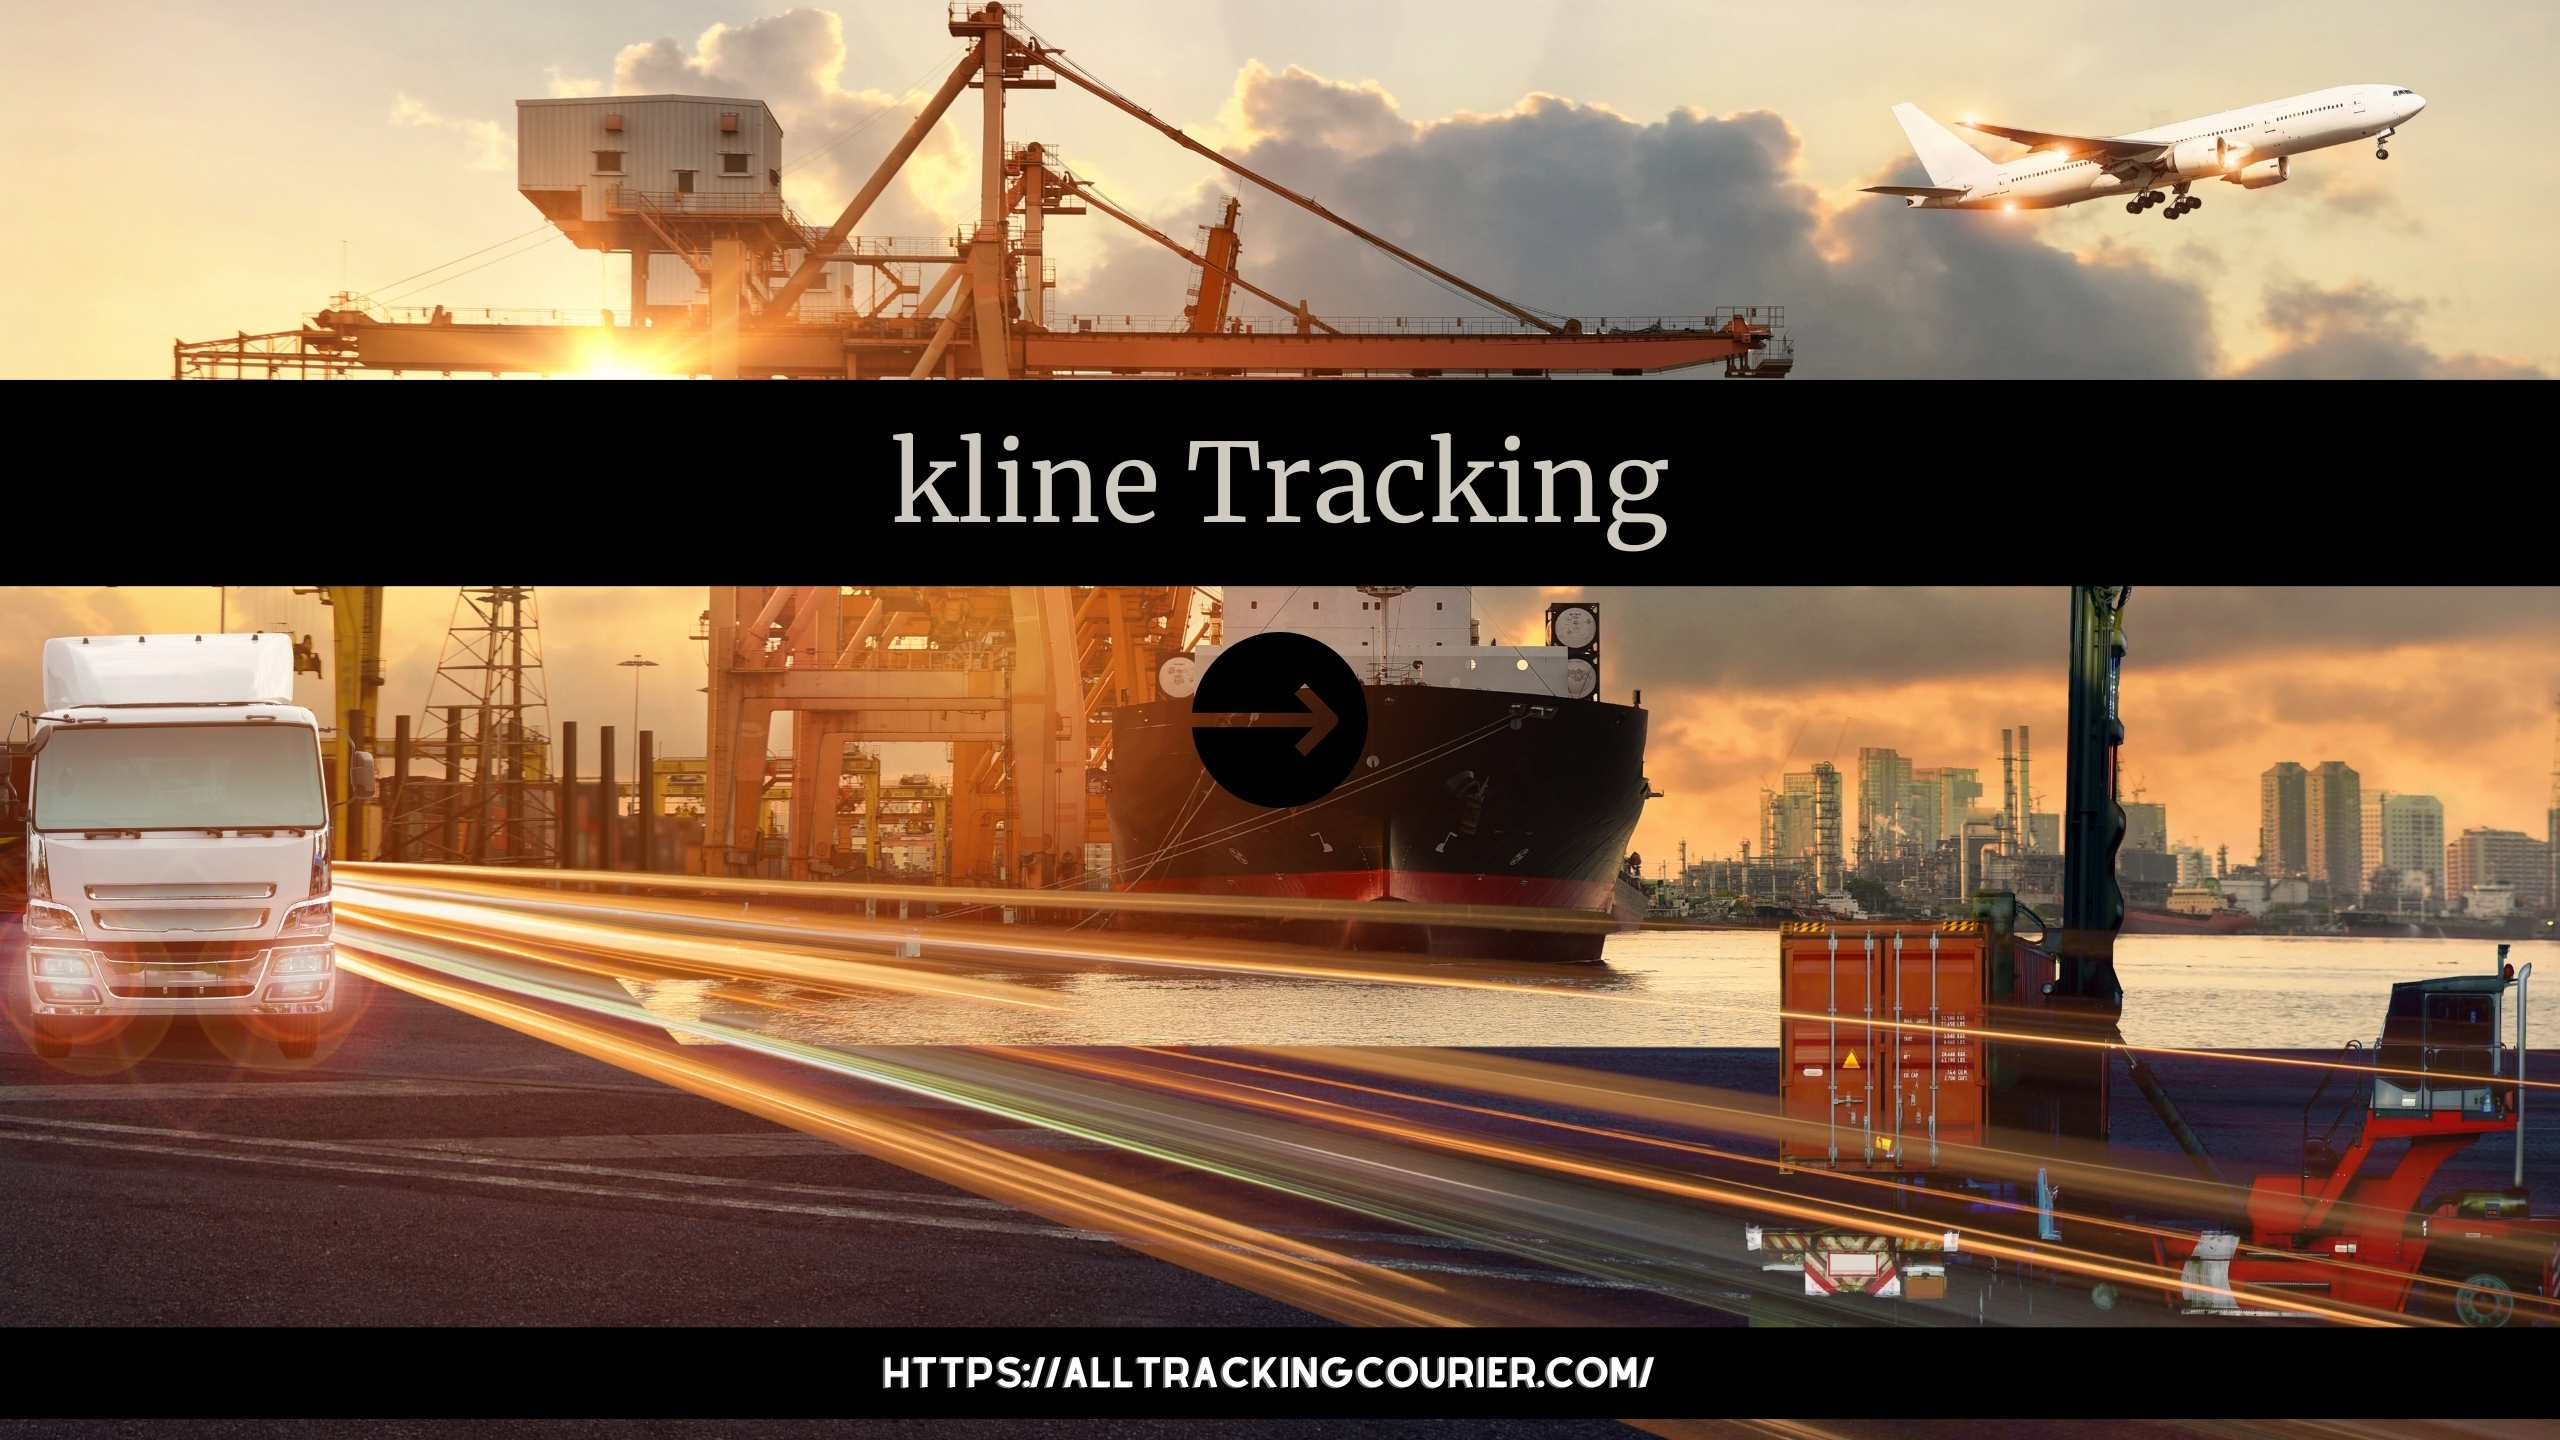 kline Tracking -  Container tracking - Alltrackingcourier